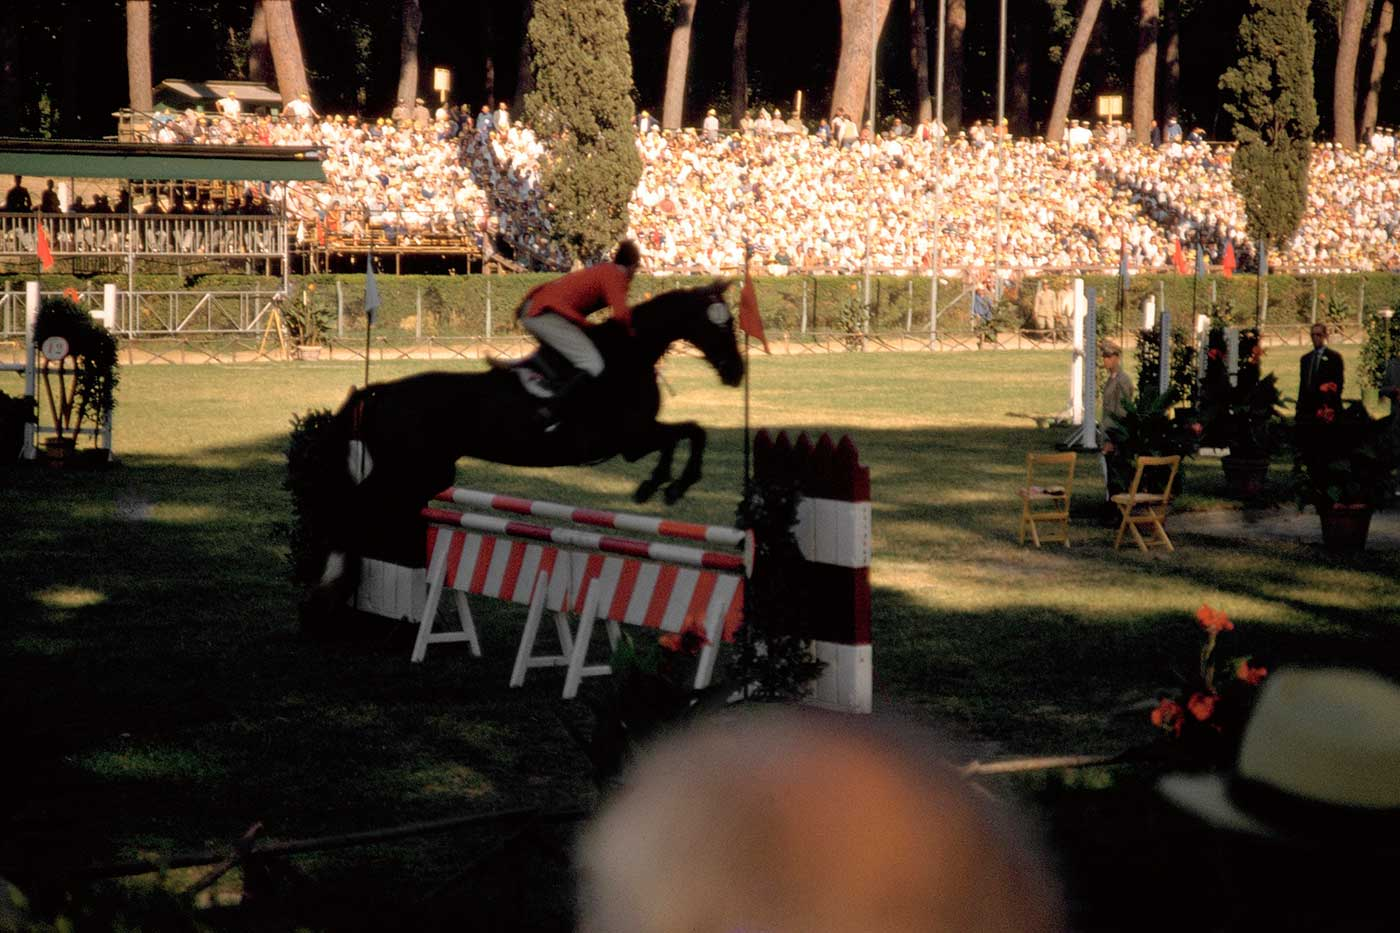 Neale and Mirrabooka get a clear round in the showjumping event at Rome Olympics, 1960. - click to view larger image